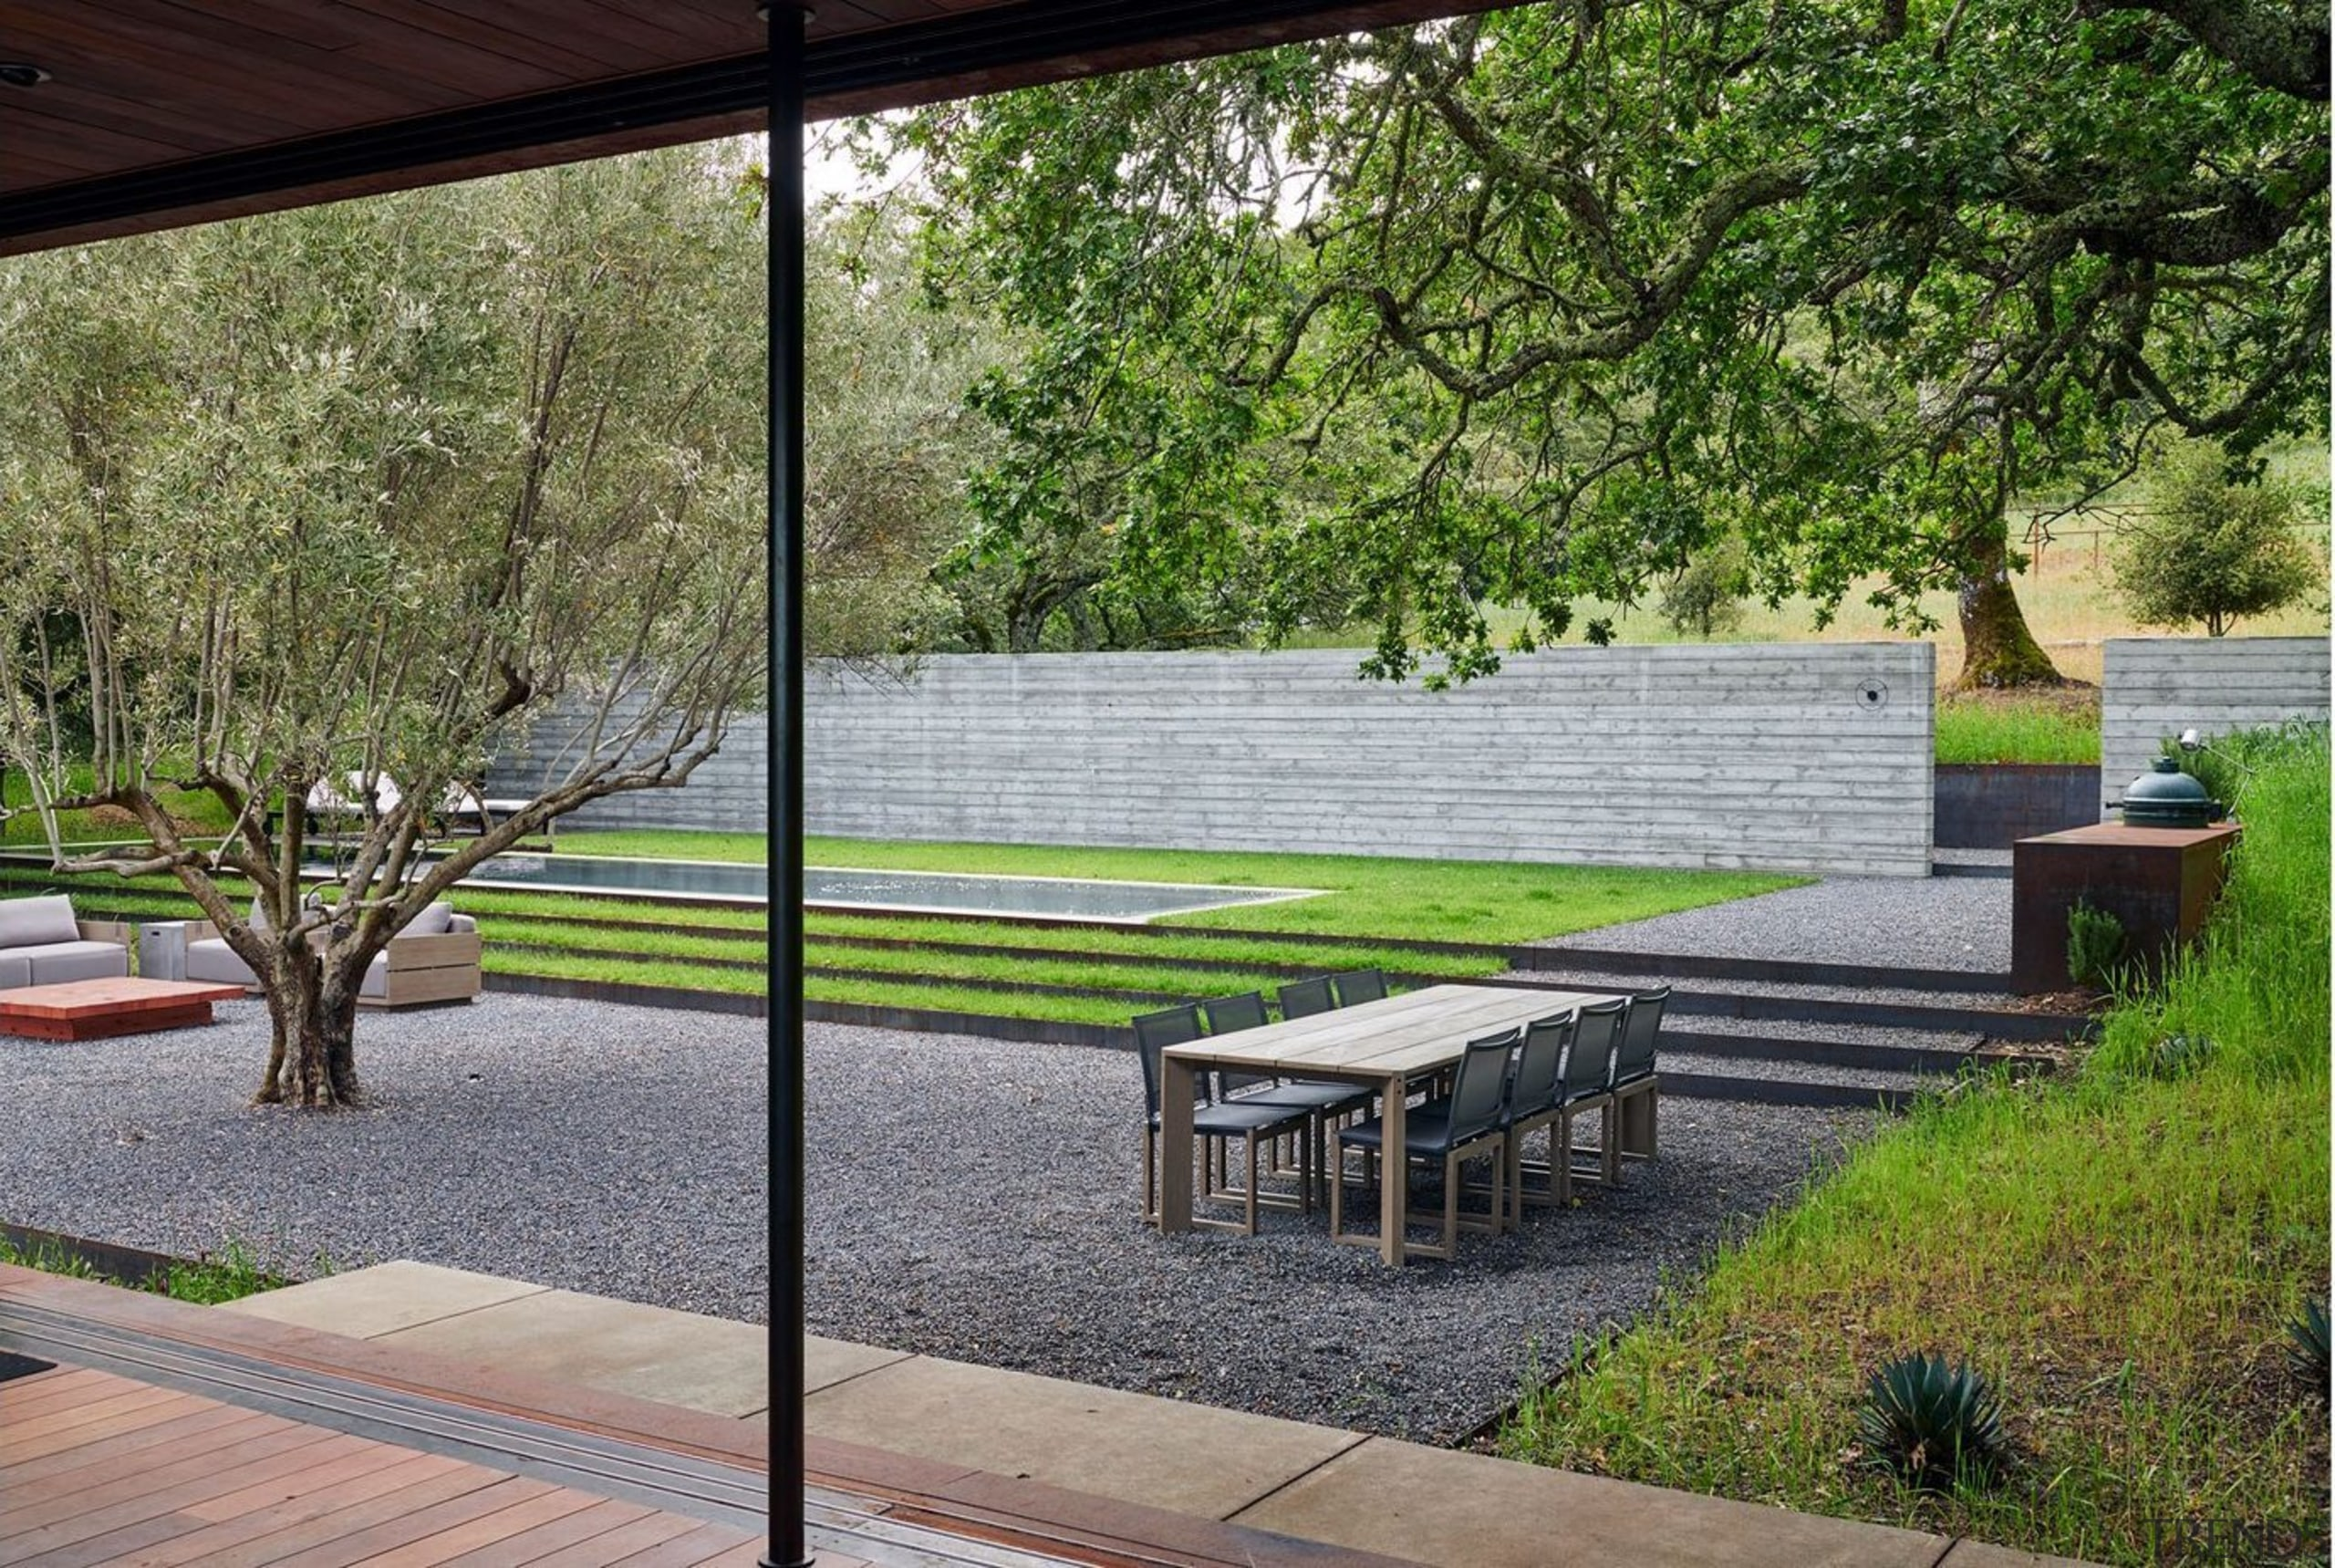 Serene and spacious, this landscaped outdoor space won gray, brown